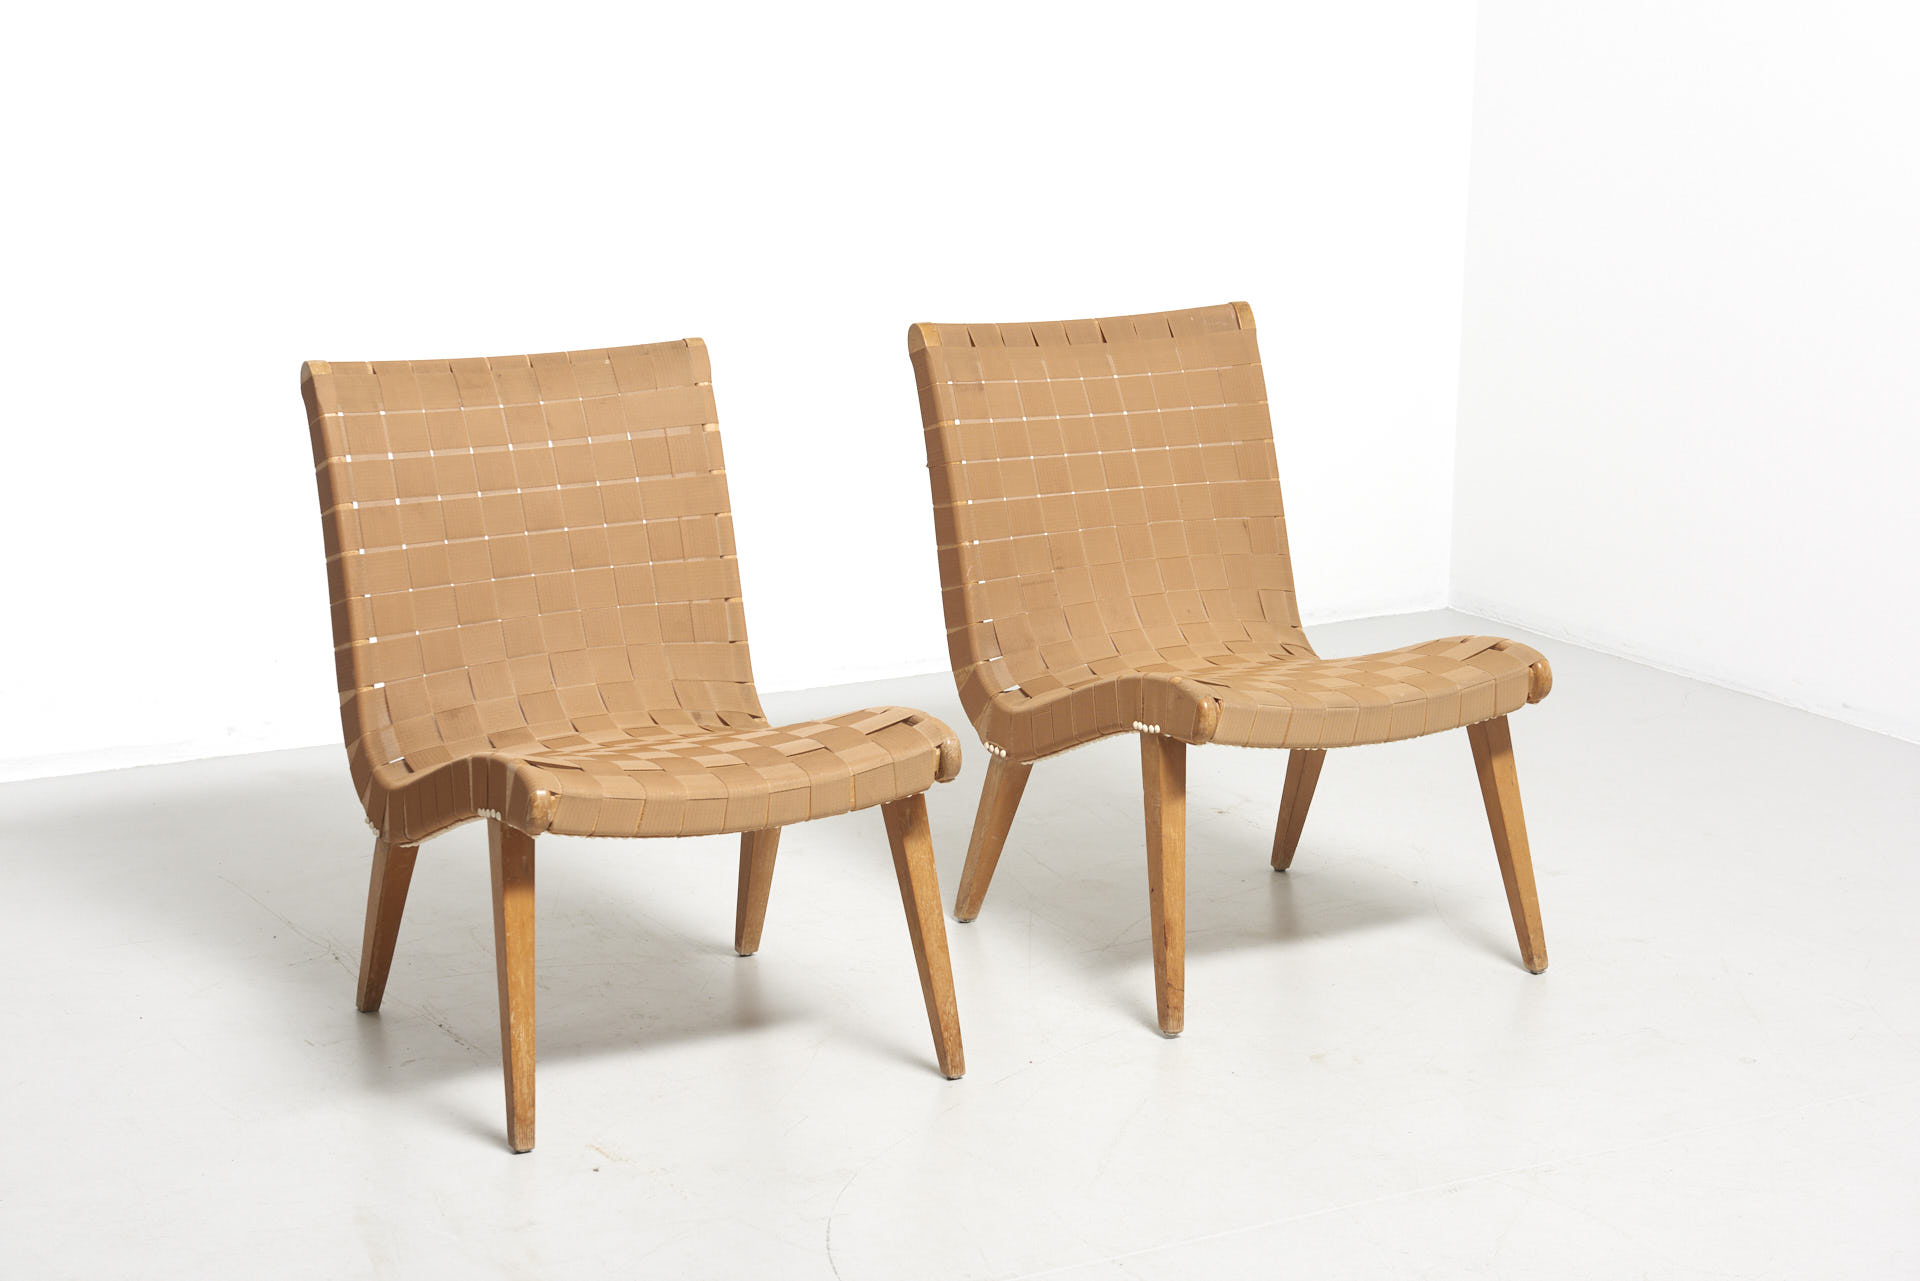 modestfurniture-vintage-1881-jens-risom-easy-chairs-knoll-beige01